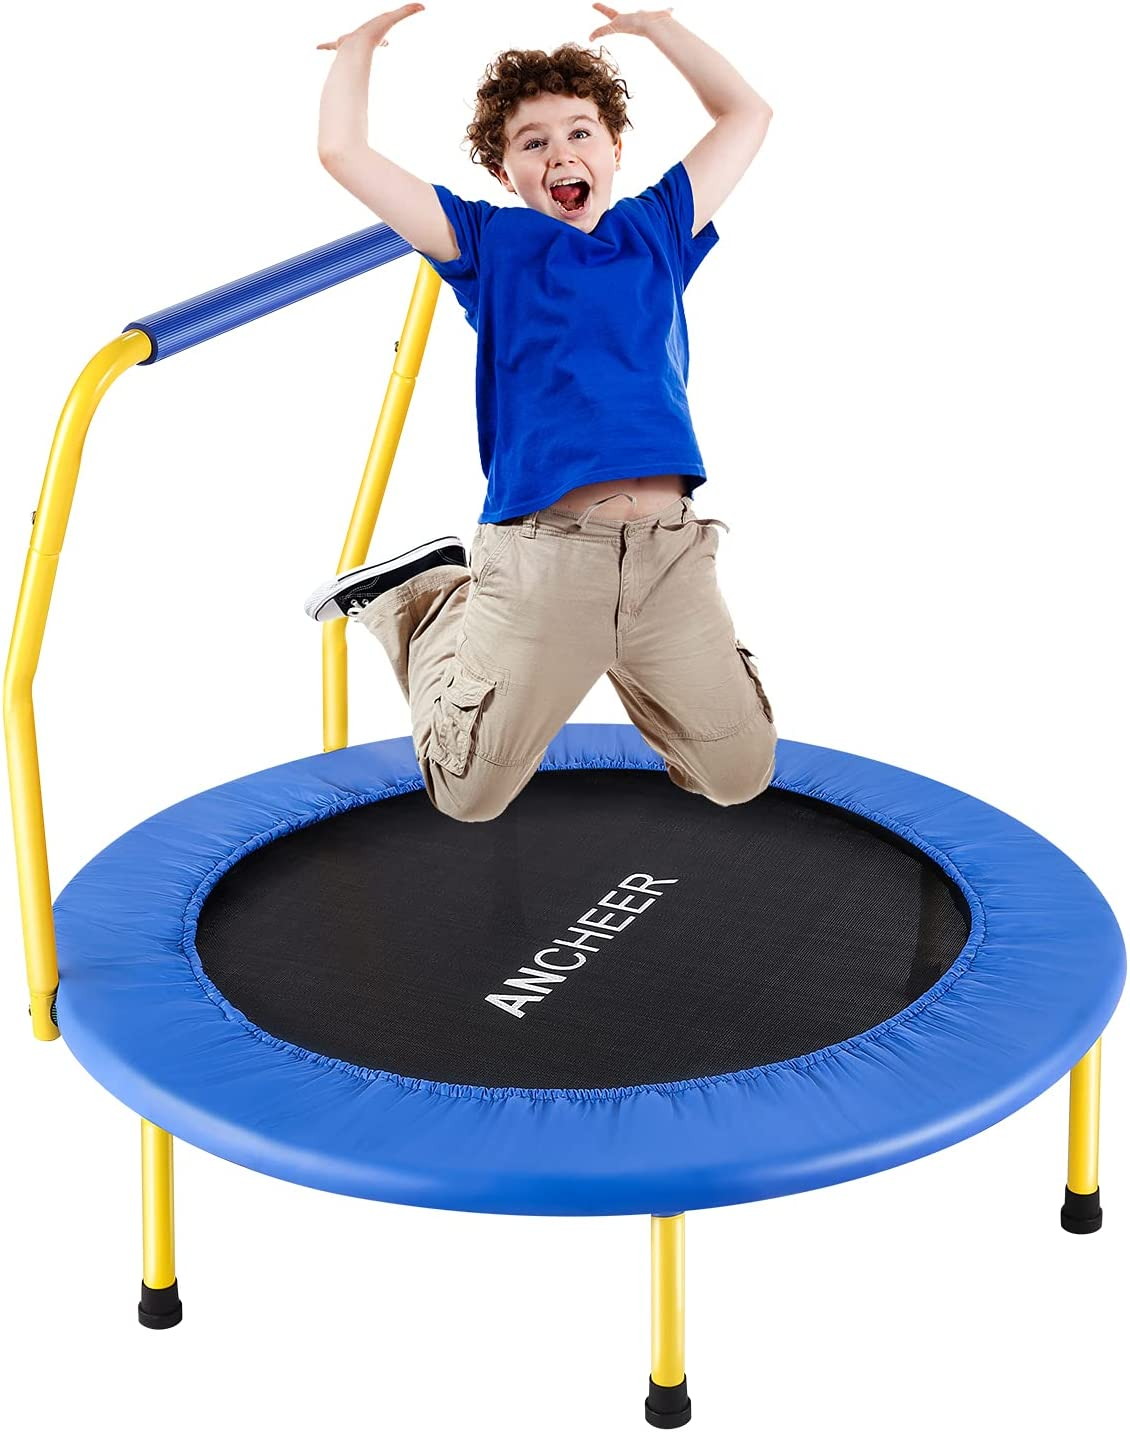 ANCHEER Kids Trampoline with Safely Mini Handrail Colorado Springs Mall T Now free shipping 36'' Outdoor